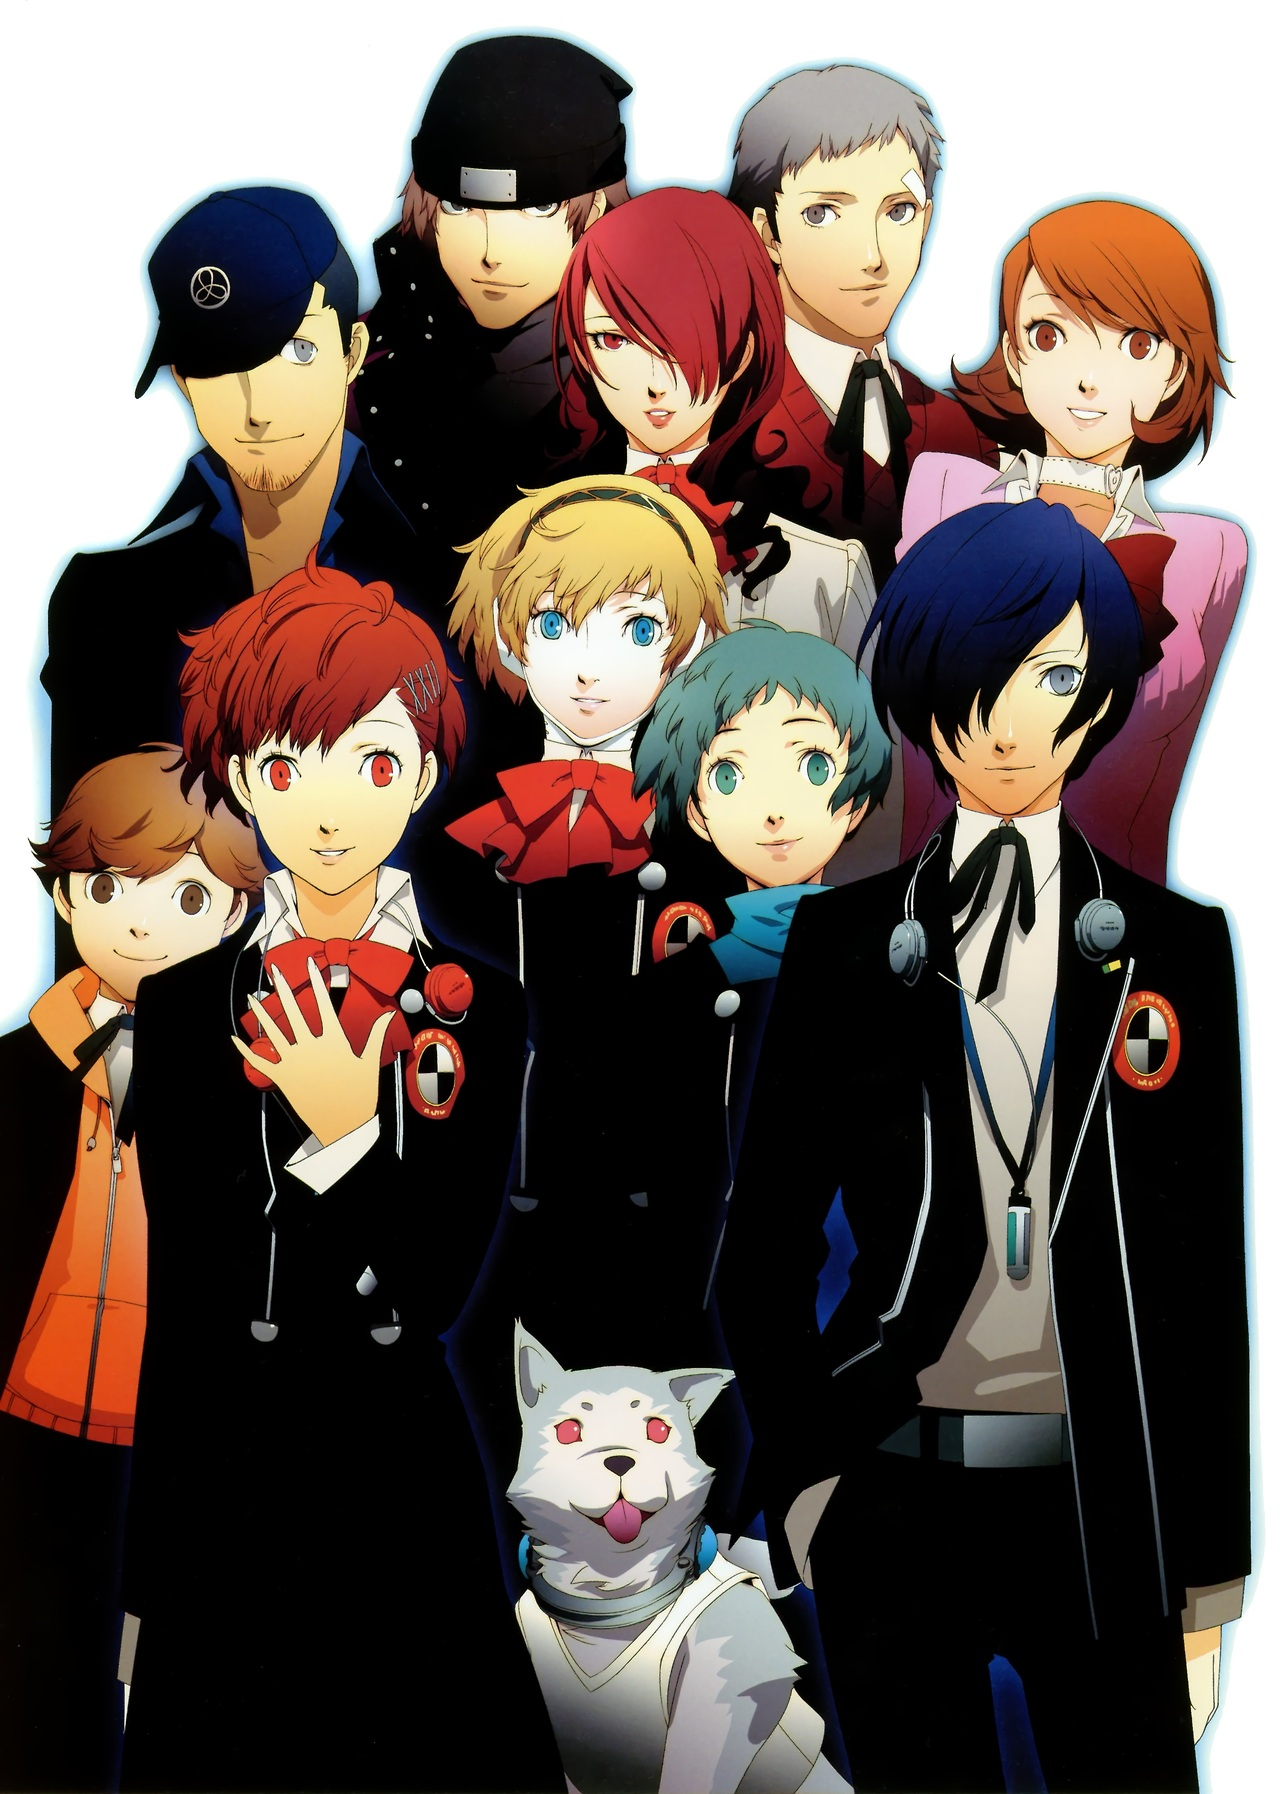 Persona 3 | Megami Tensei Wiki | FANDOM powered by Wikia